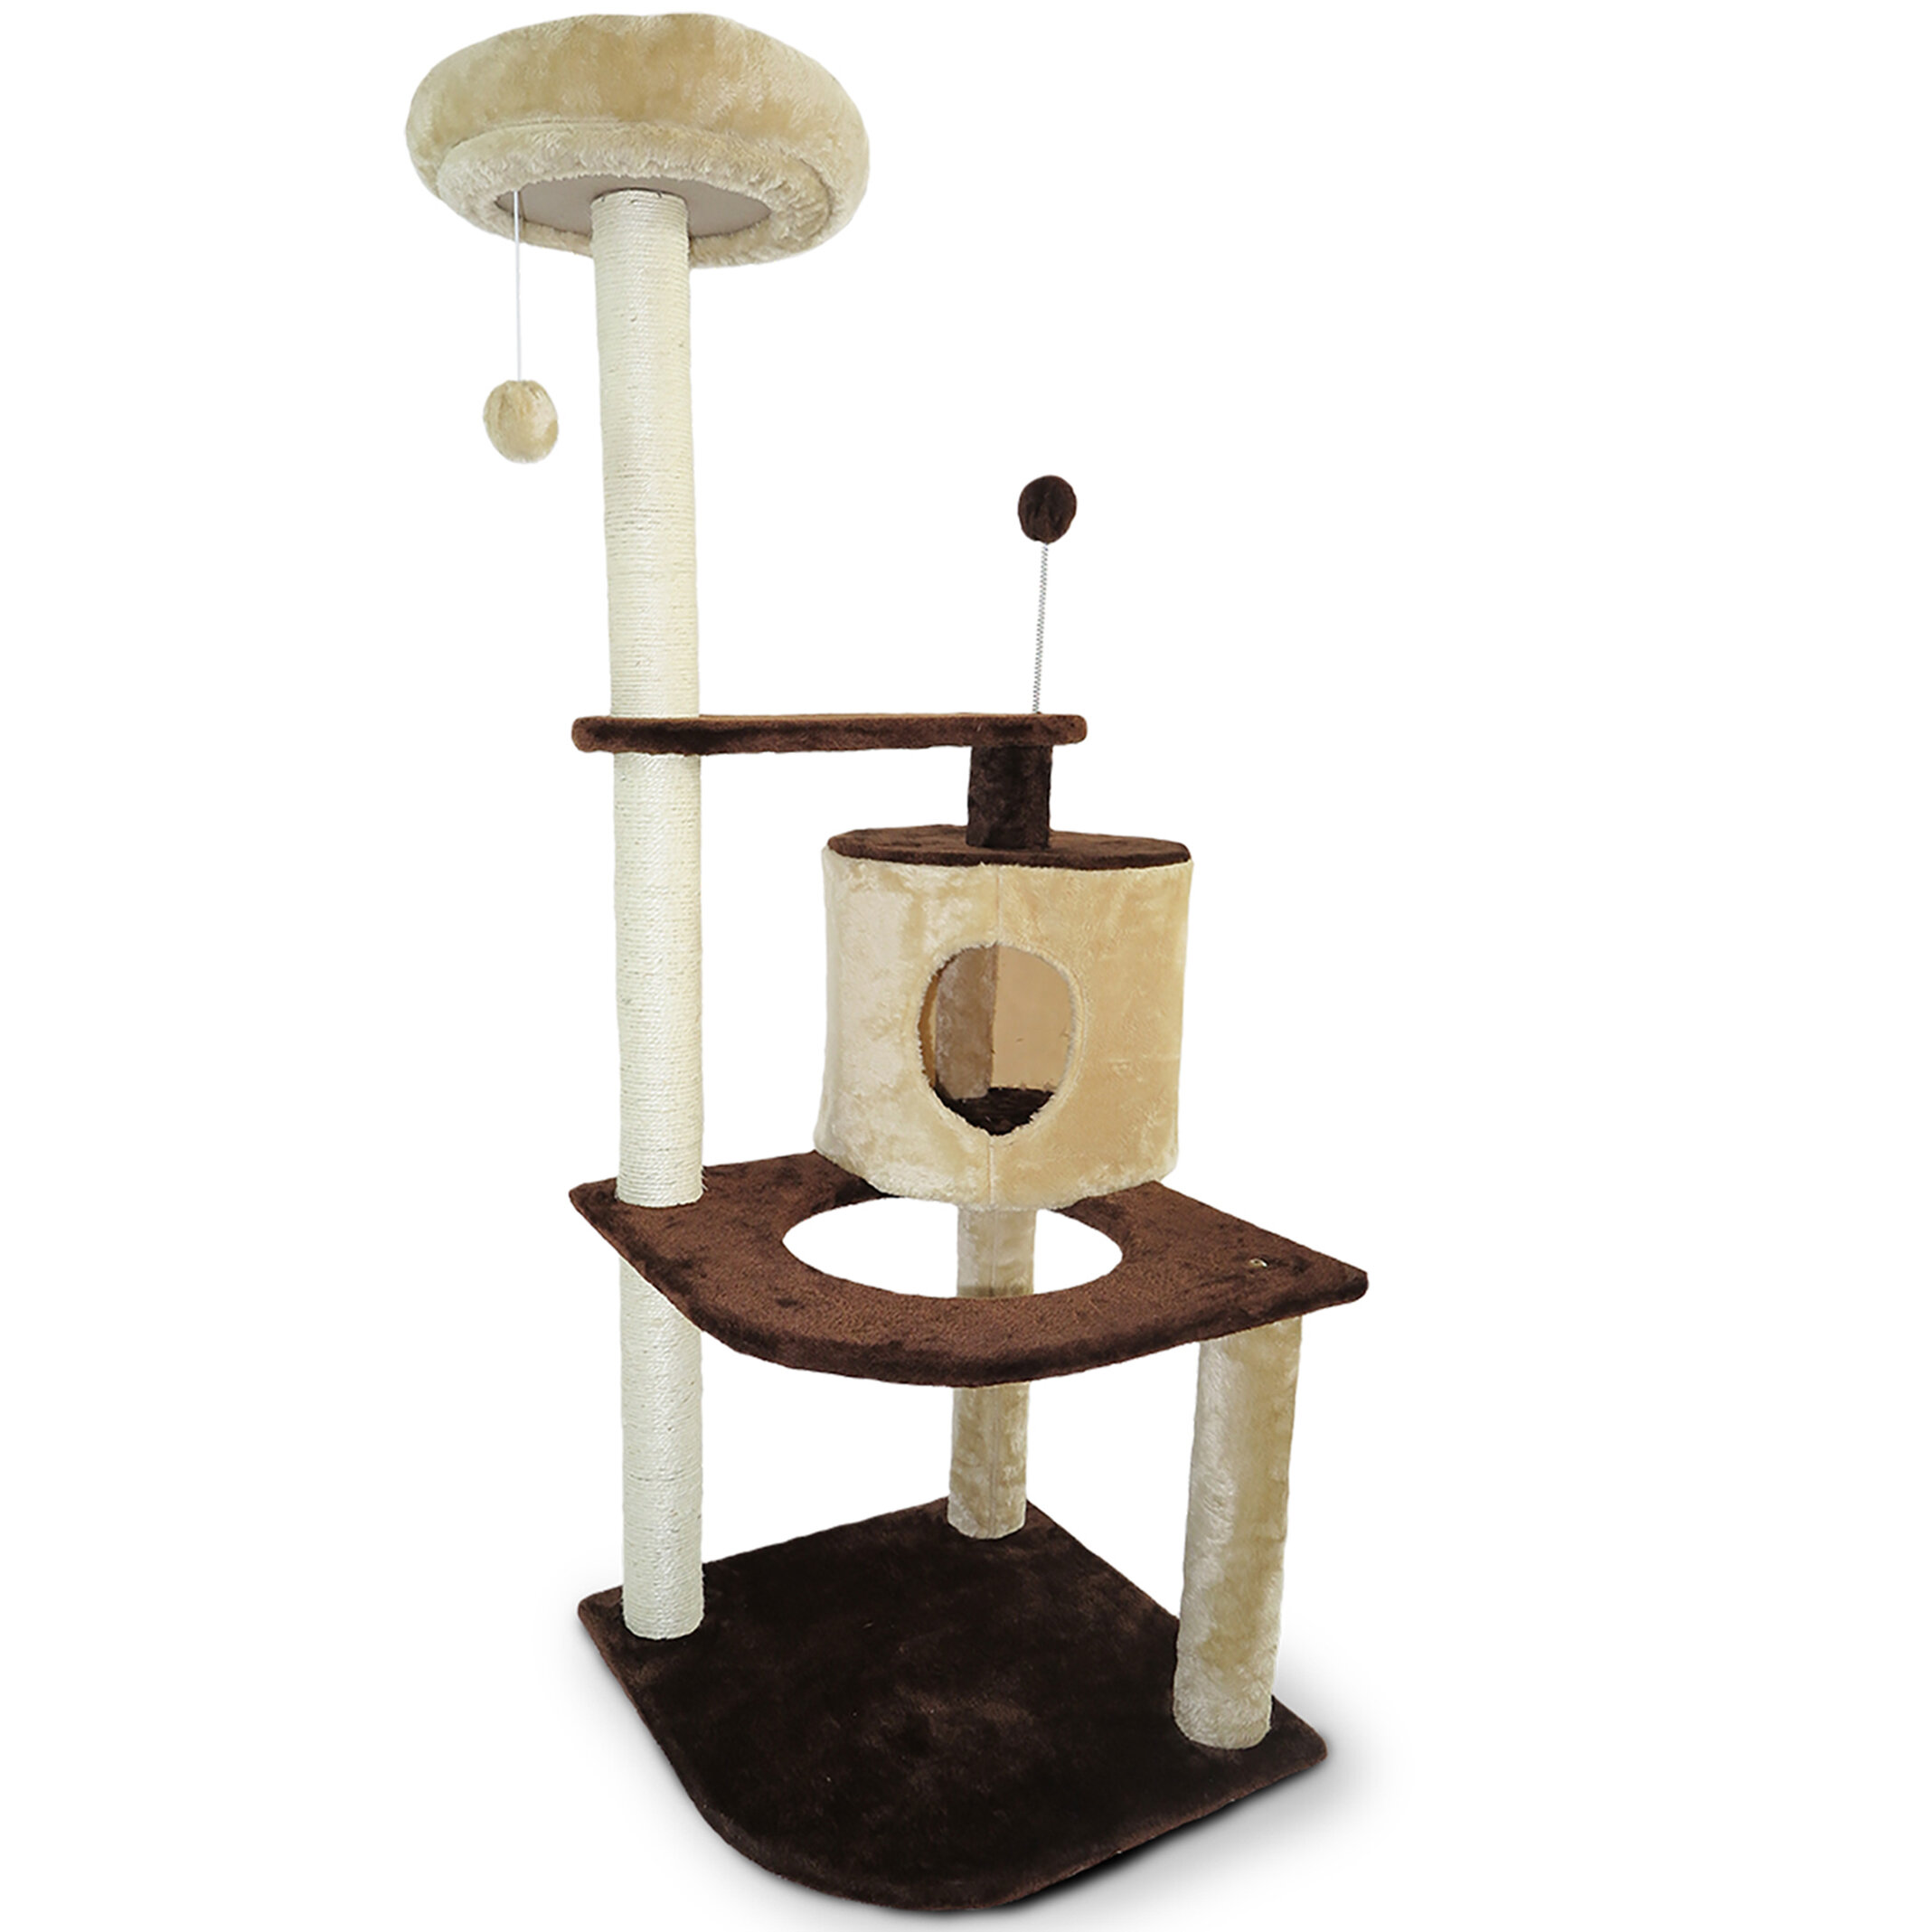 furniture post chocolate details with condo tree toys posts paper natural d petpals cat level rope inc and s teasing group extra three scratching perches page for covered cream reign product